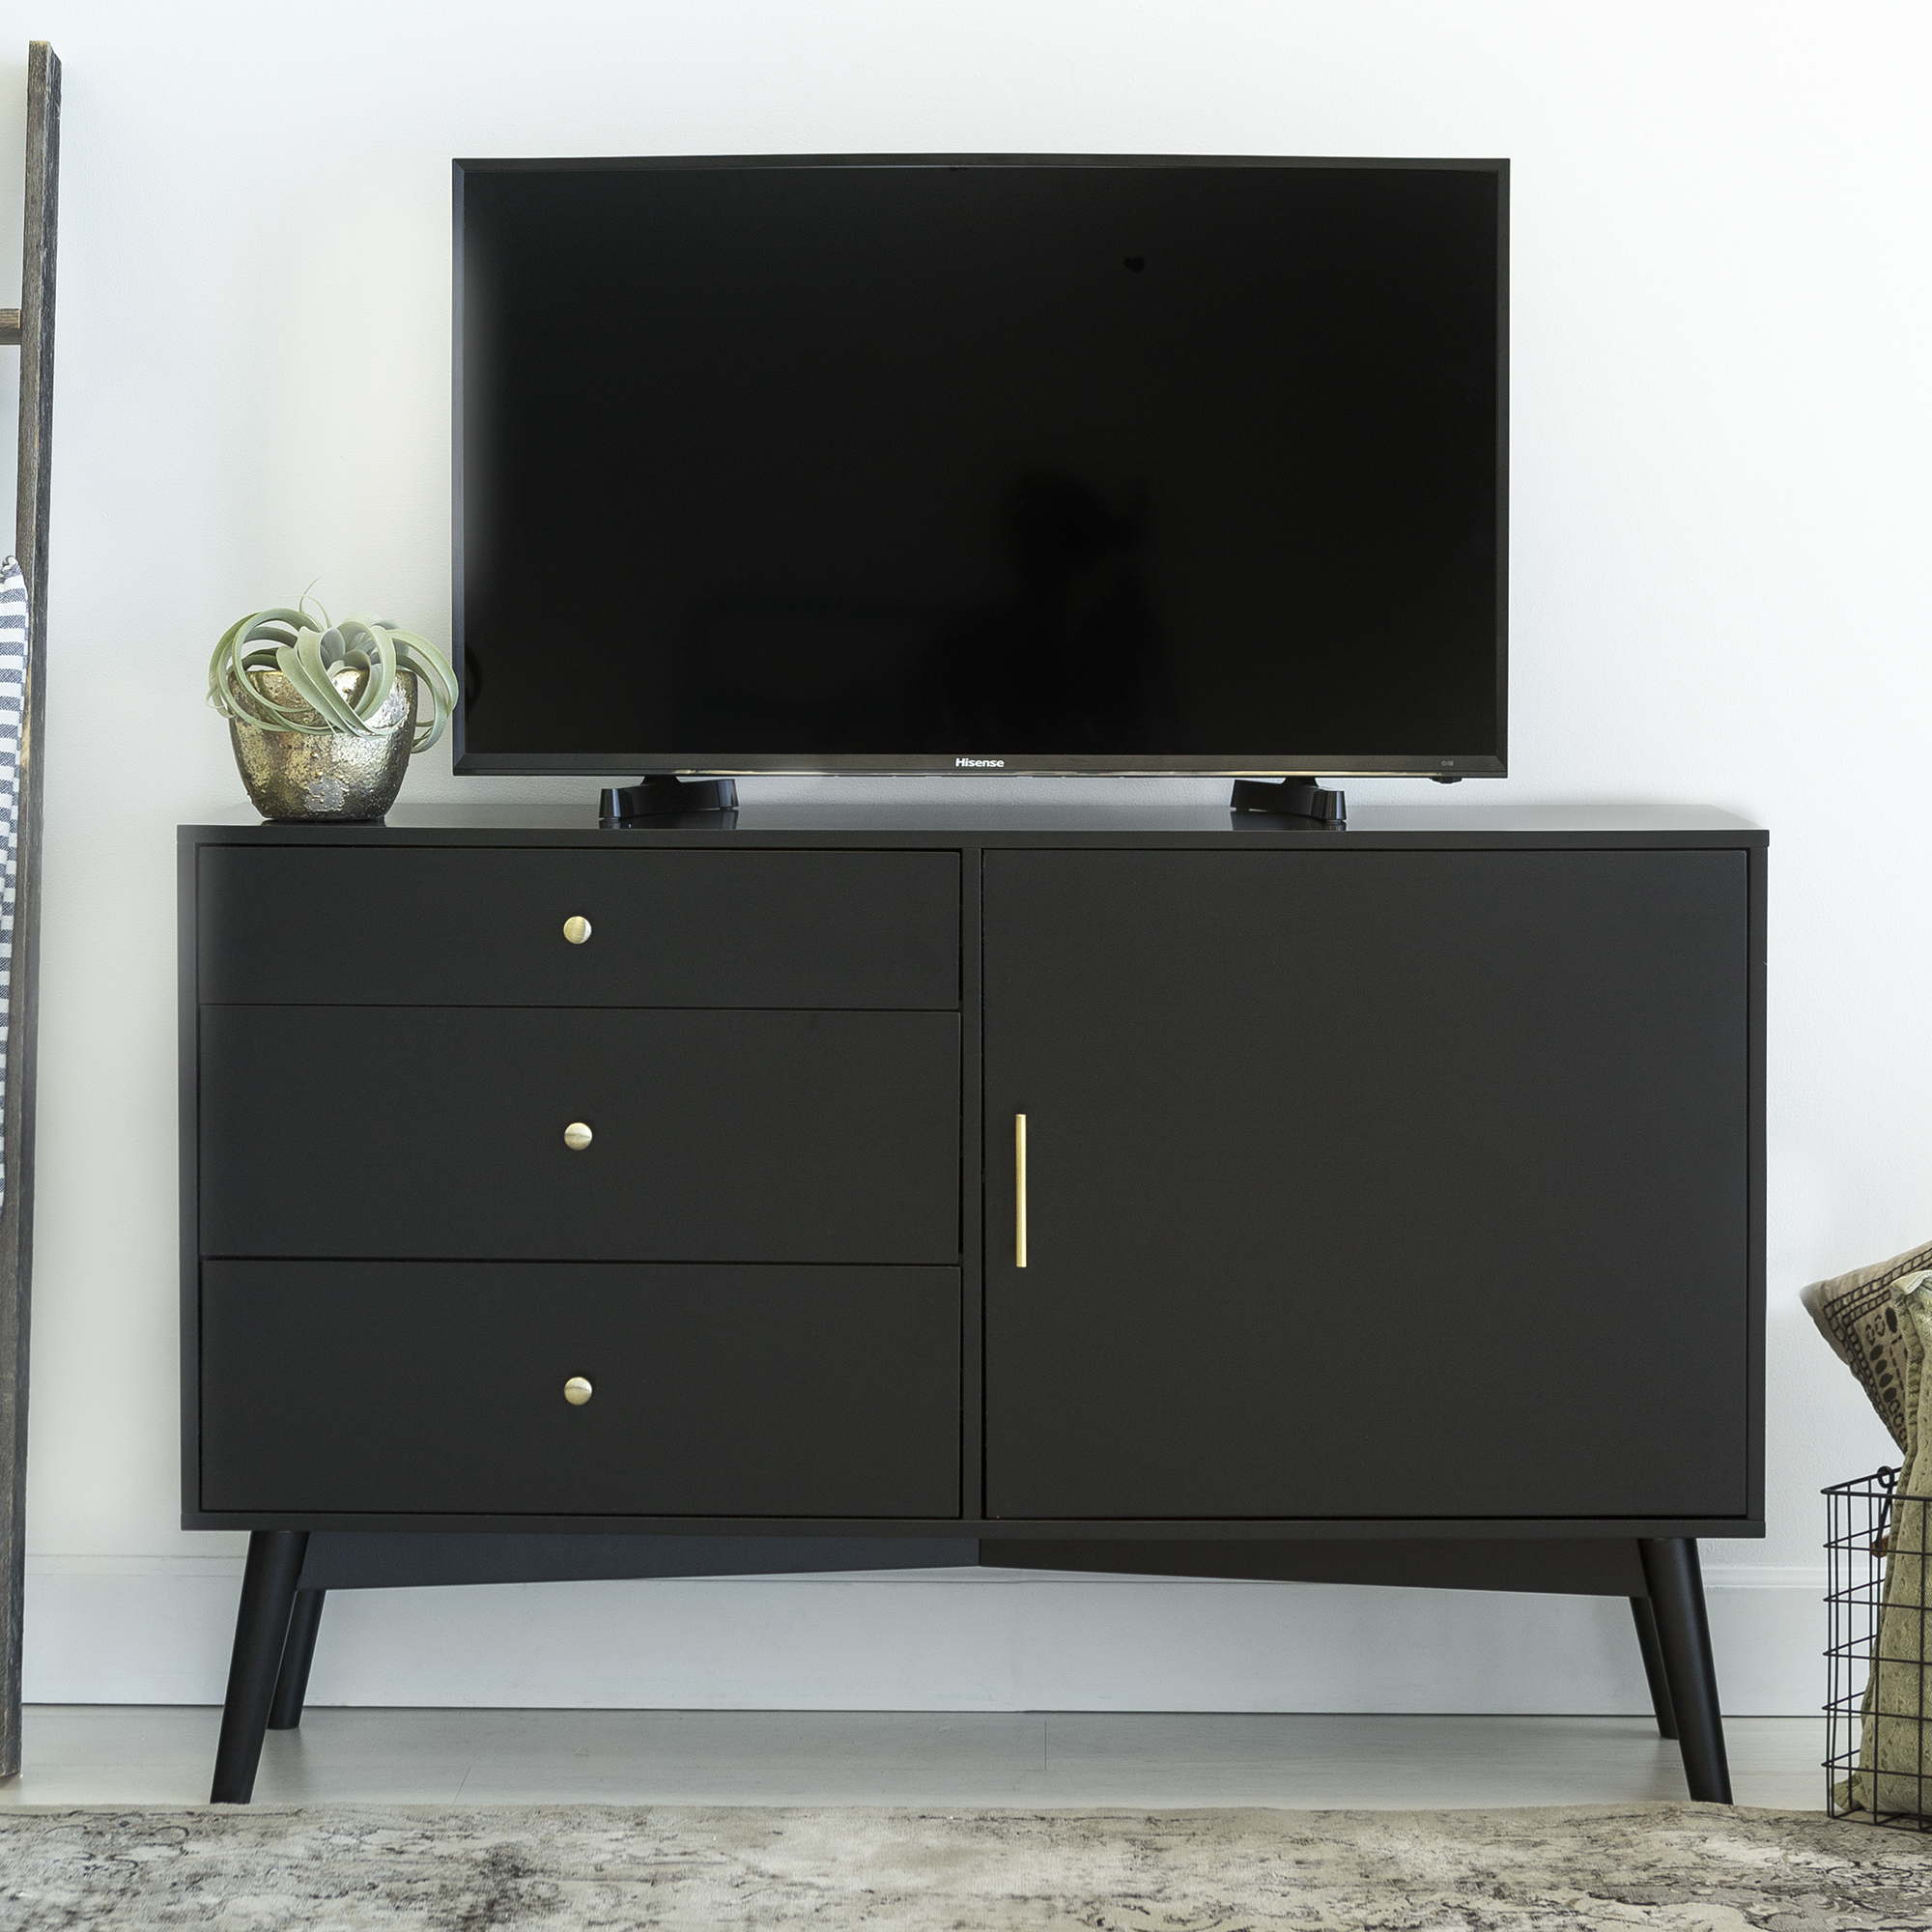 "angelo:HOME 52"" Mid-Century TV Stand Storage Console Entertainment Center - Black"